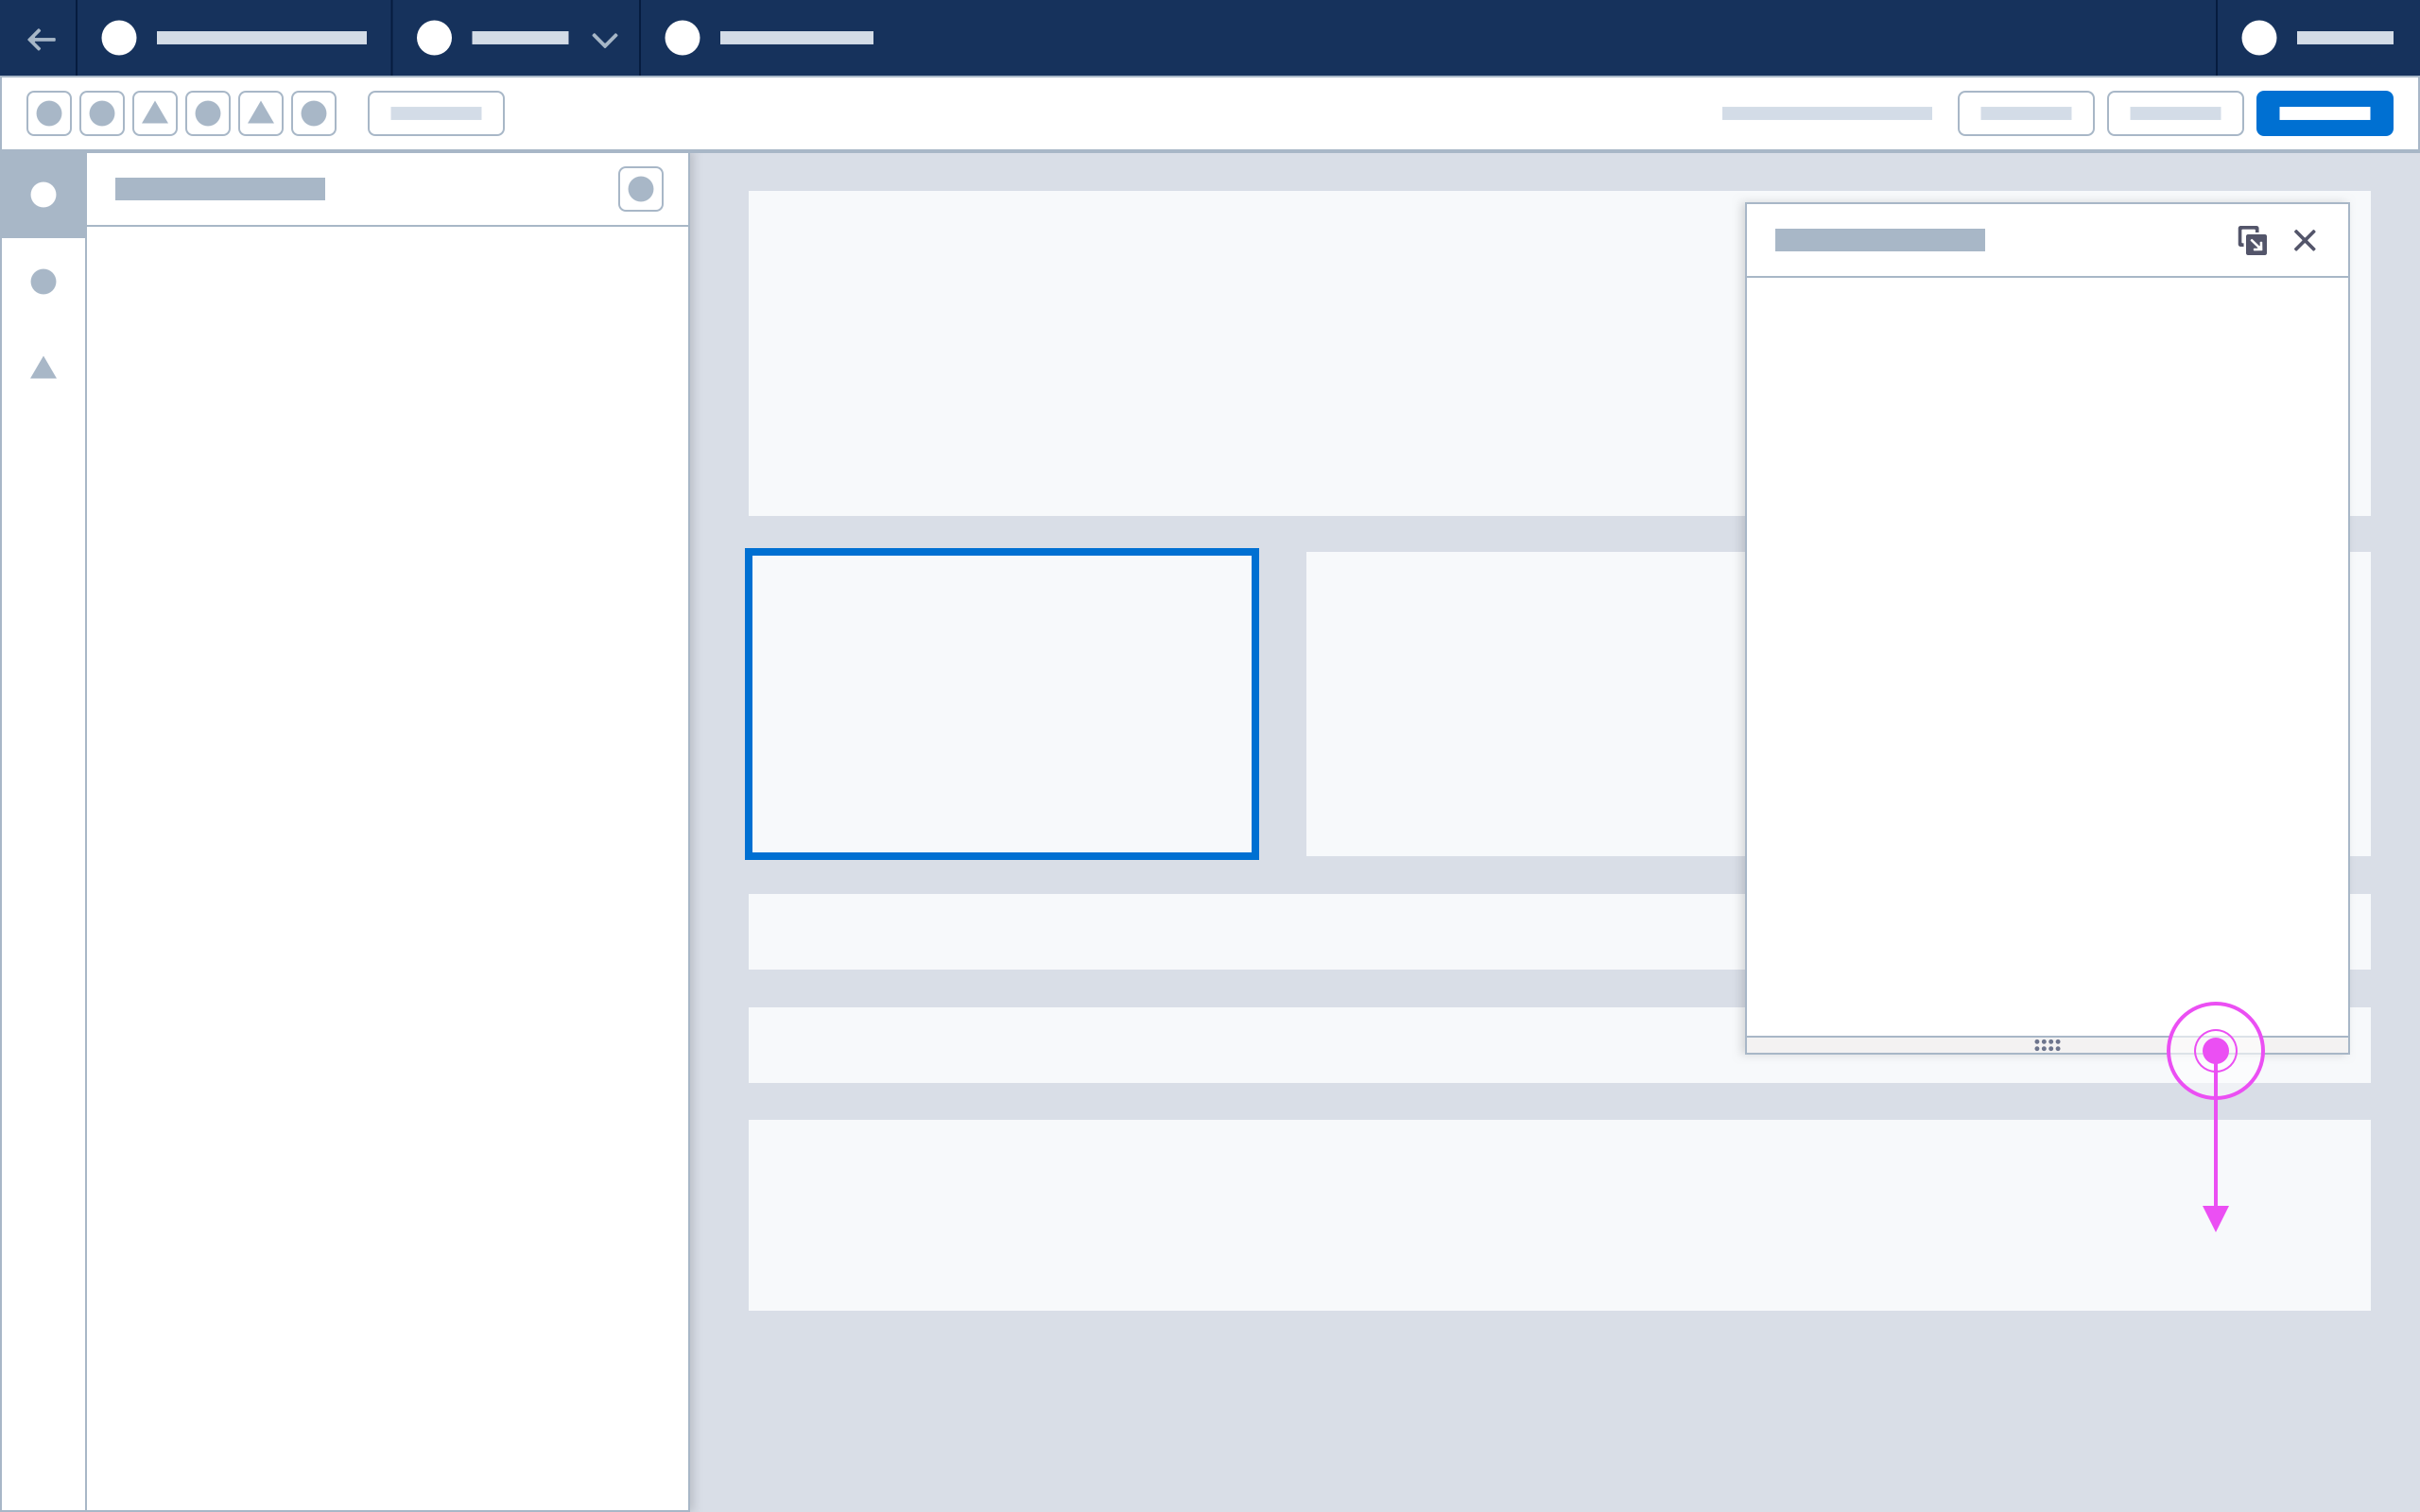 A wireframe showing how a floating panel can be resized.